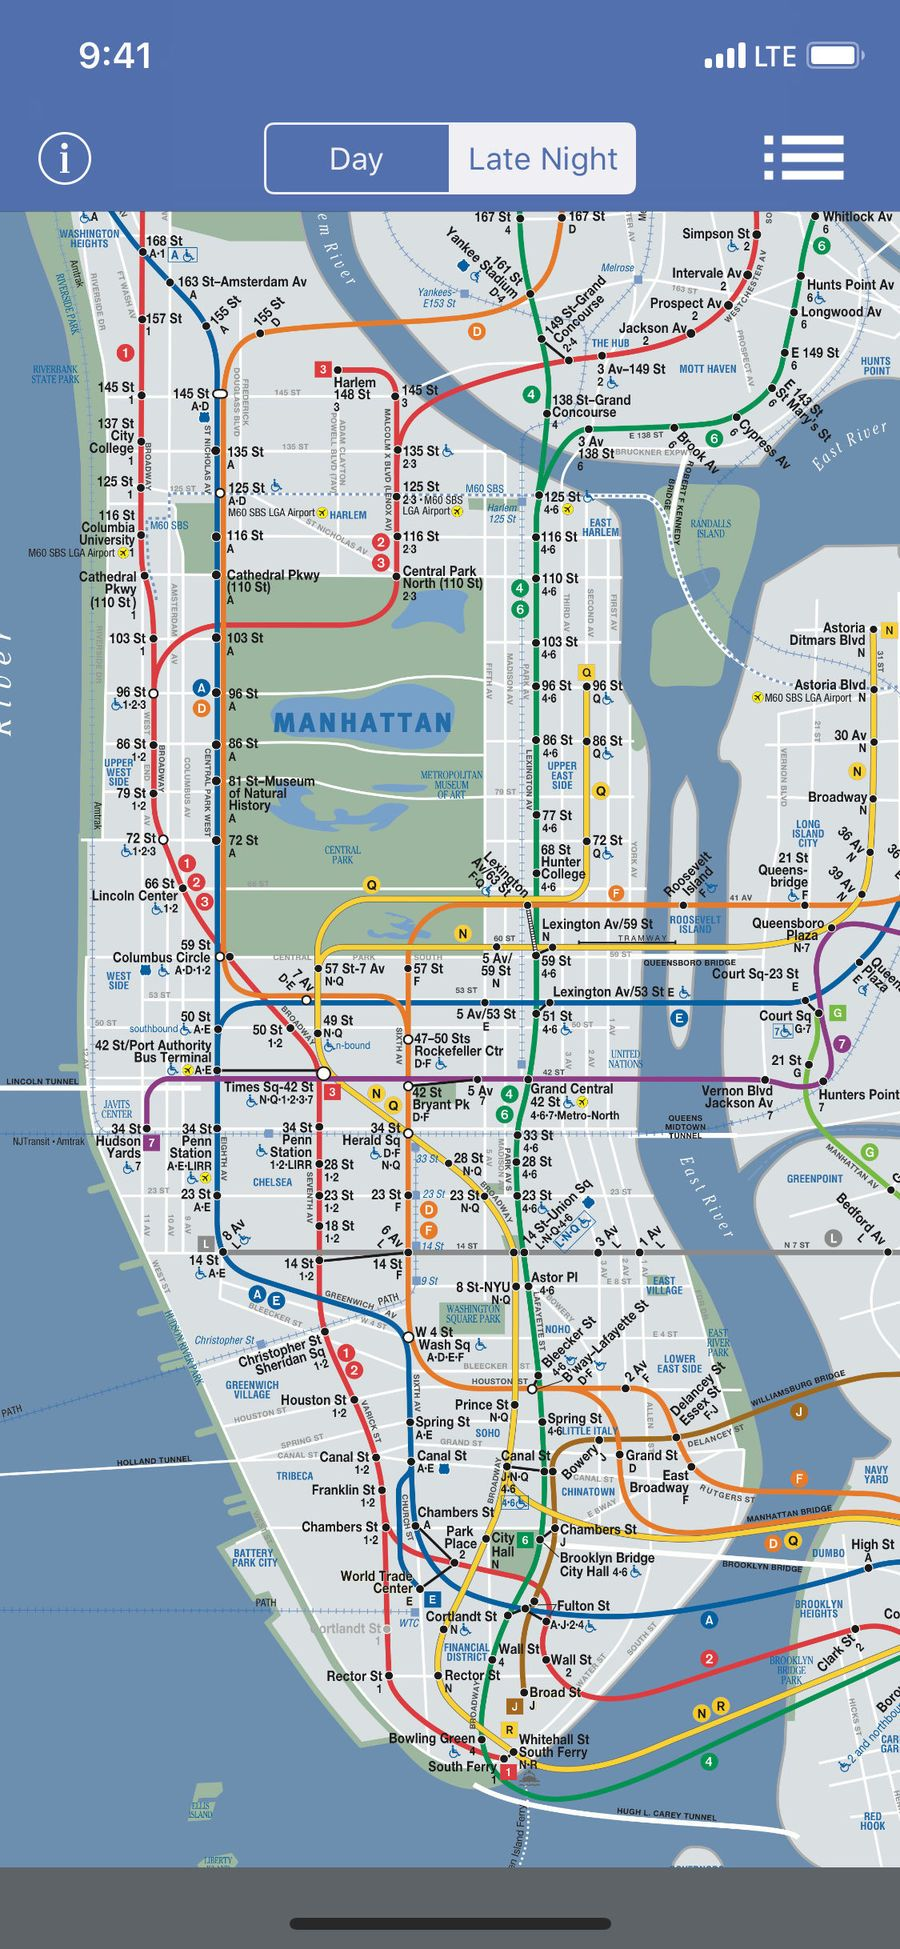 Iphone Map Of New York Offline.New York Subway Map Offline Navigation Dimayuga Ios Travel Apple